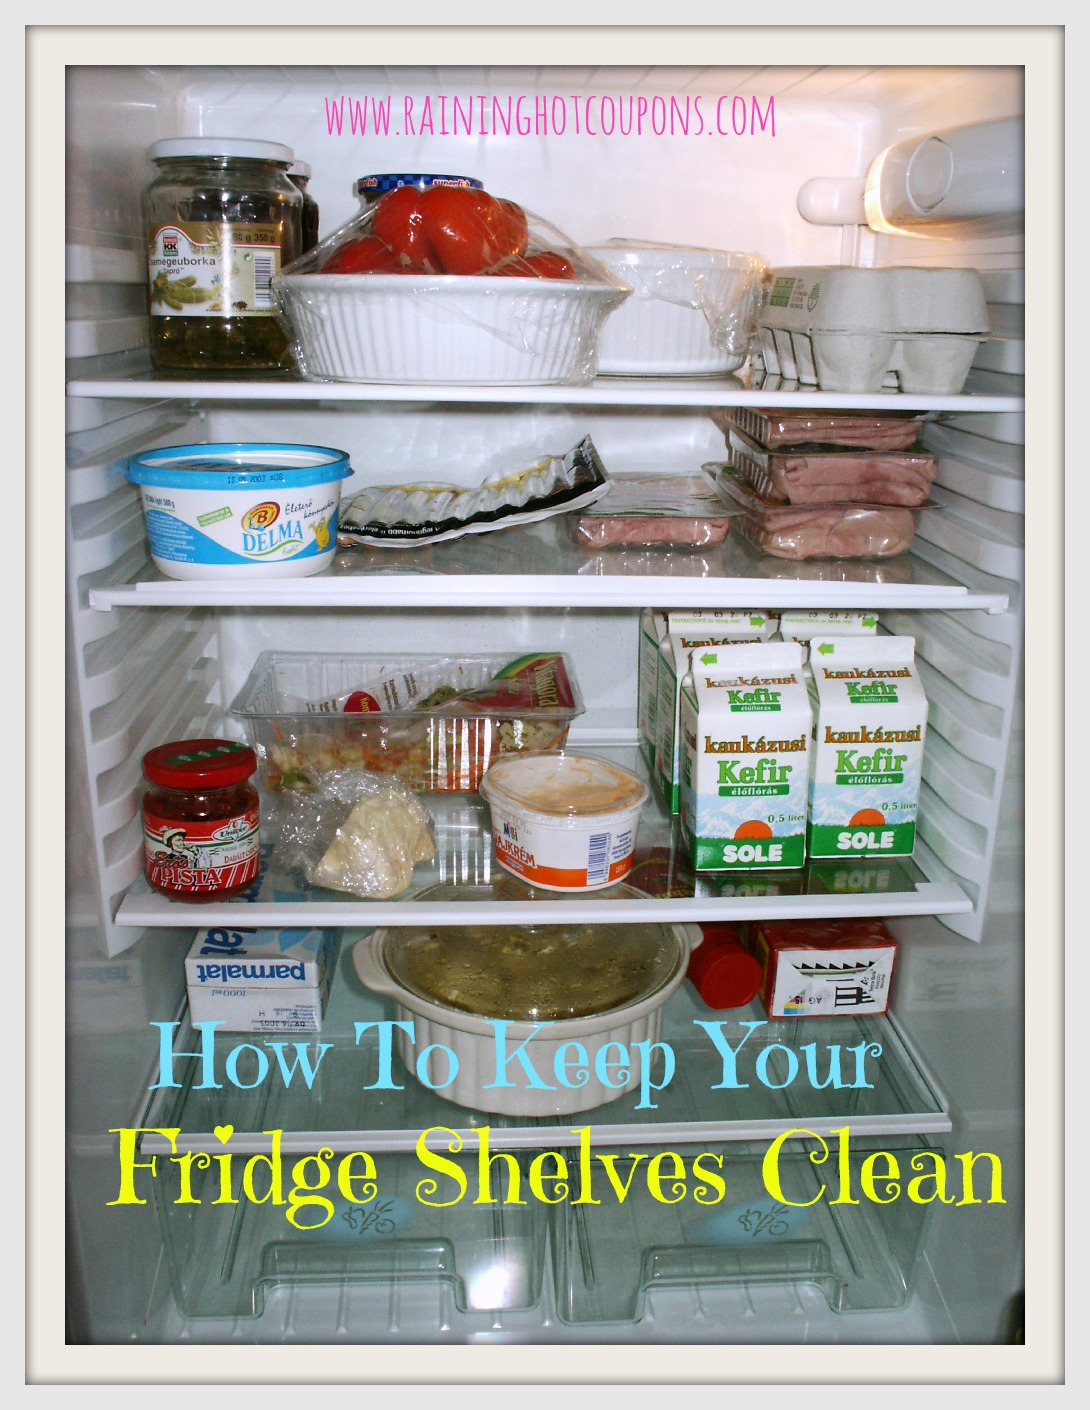 Howtokeepyourfrishelclean How To Keep Your Fridge Shelves Clean